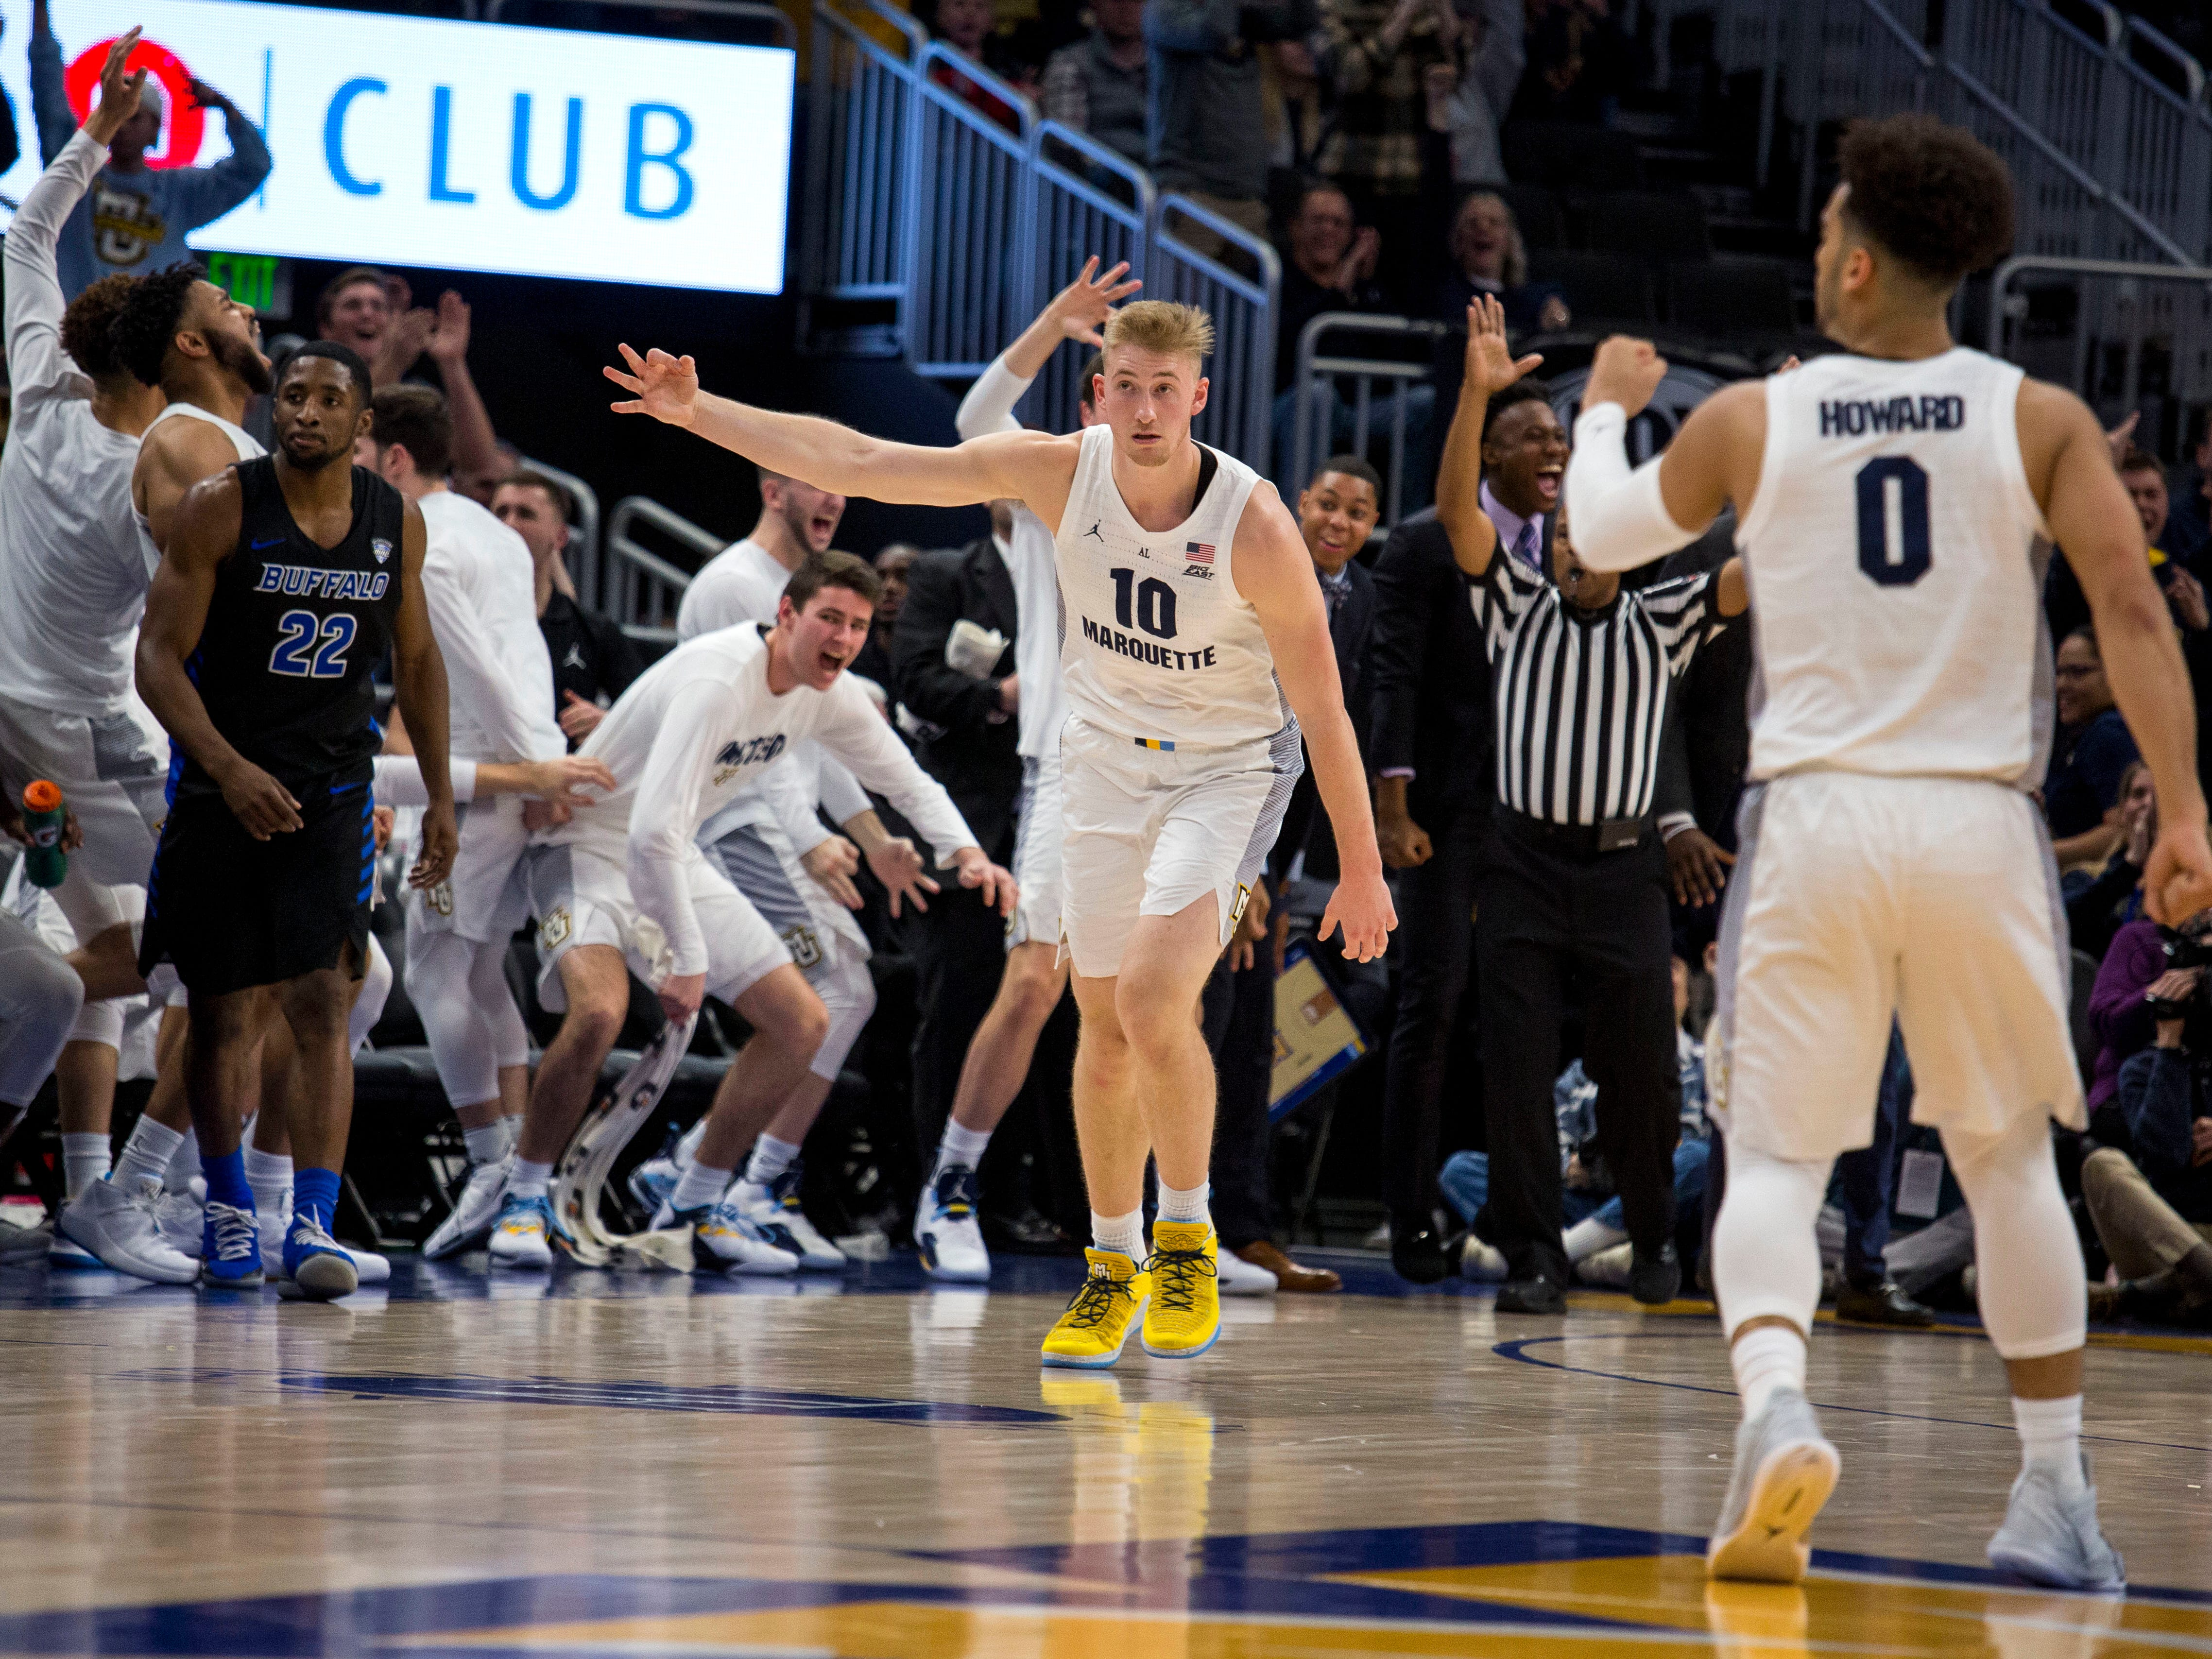 Golden Eagles forward Sam Hauser motions to the Marquette bench after hitting a three-pointer in the second half against Buffalo. Hauser hit a three of his three-point attempts but he also fouled out.